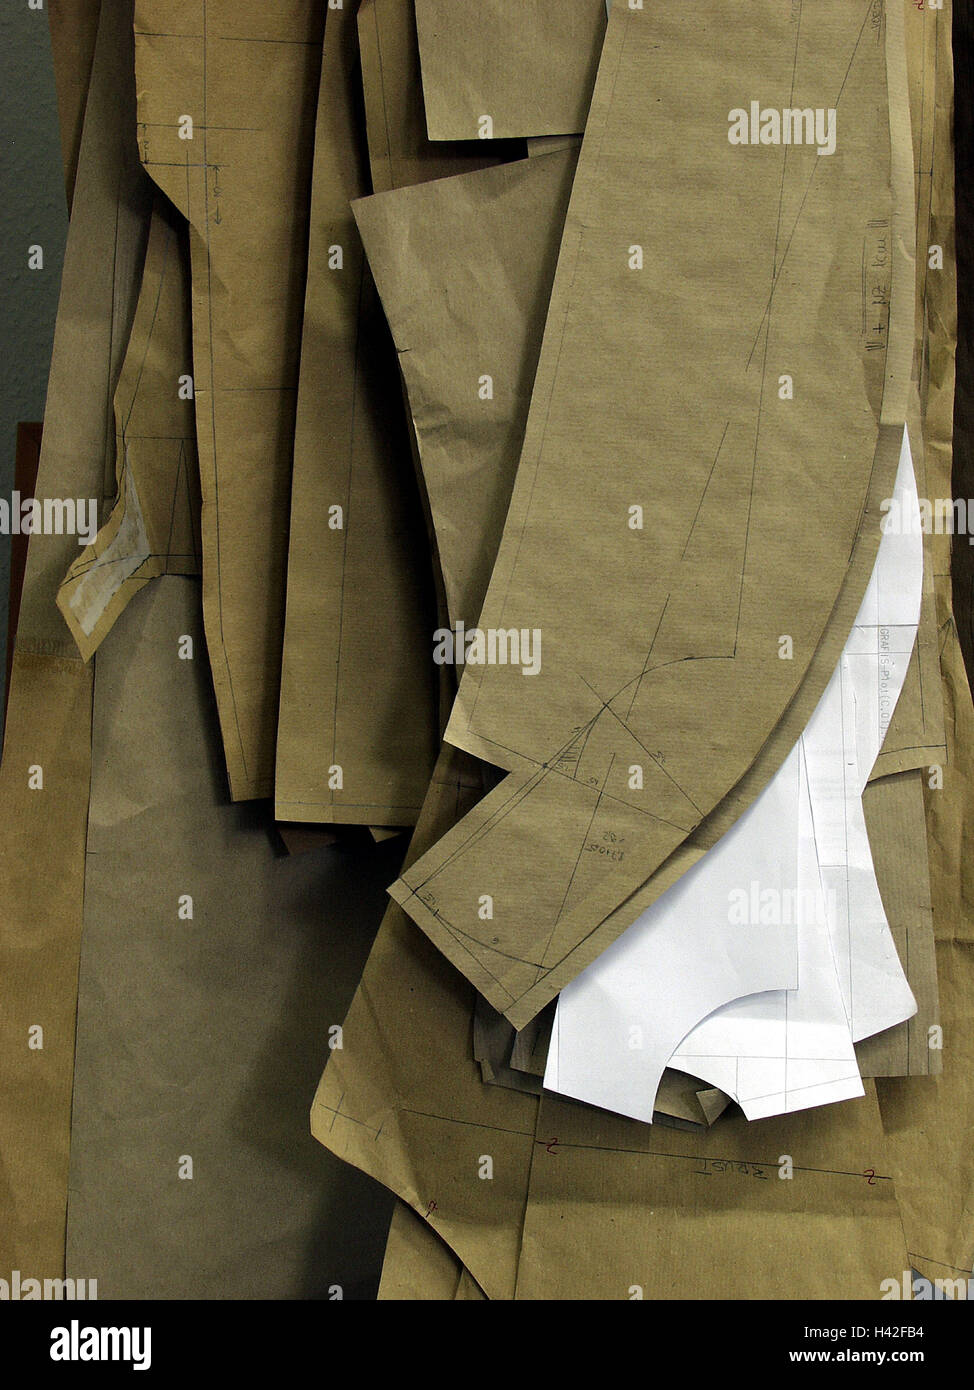 Tailoring, editing sample, detail, needlework, dimension tailoring, slices, samples, templates, tailor, sew, sewing, - Stock Image